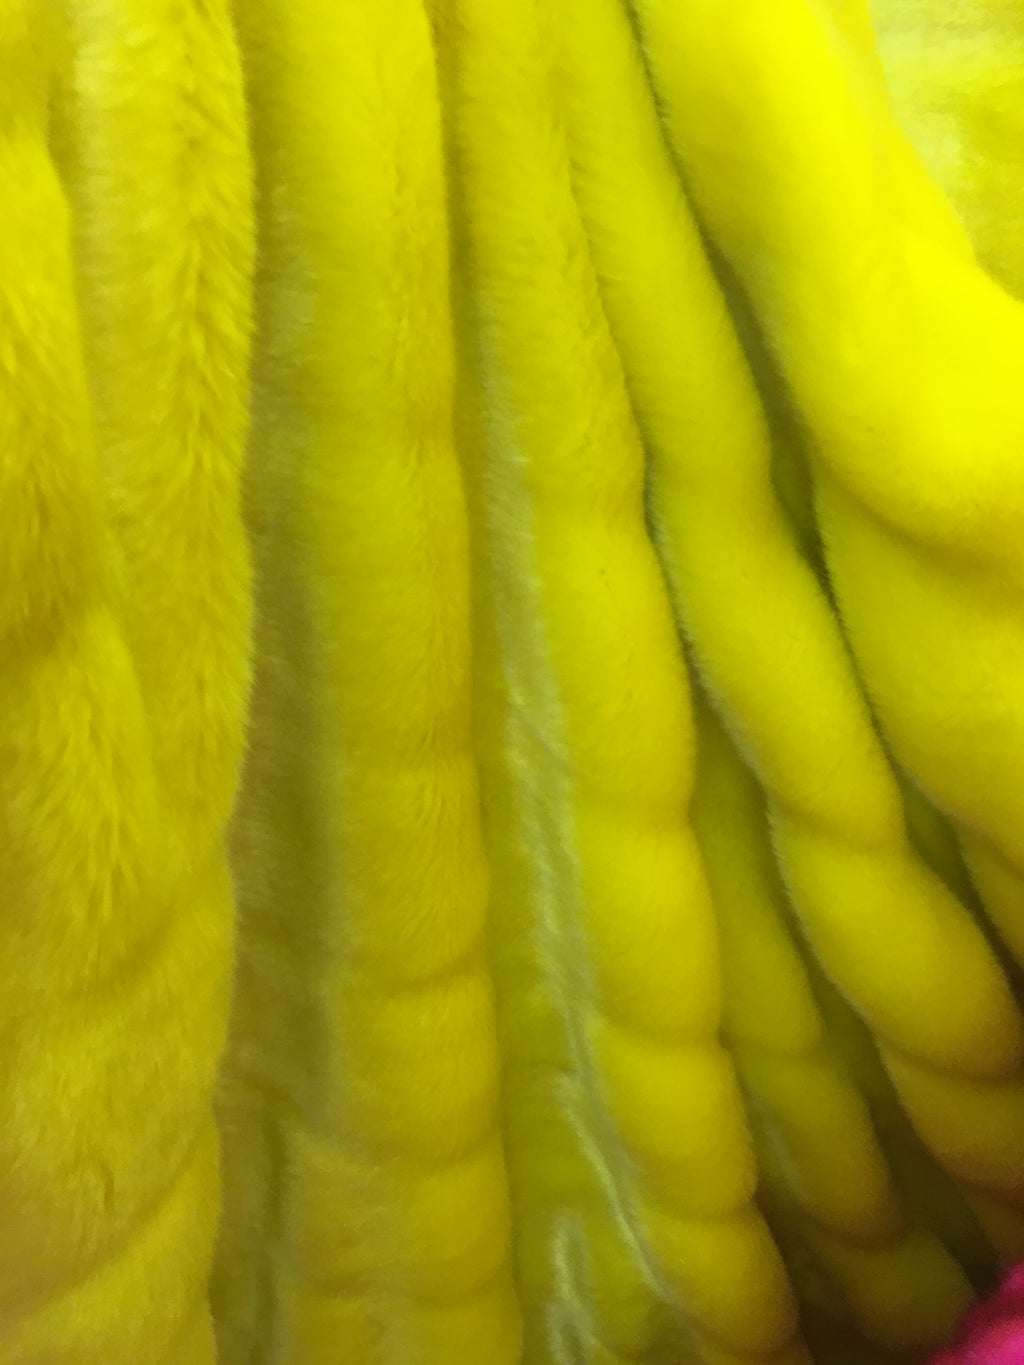 Neon Yellow Chinchilla Mink Rabbit Furs Faux Furs Soft and Luxury Supplies Fabrics Decors By the Yard